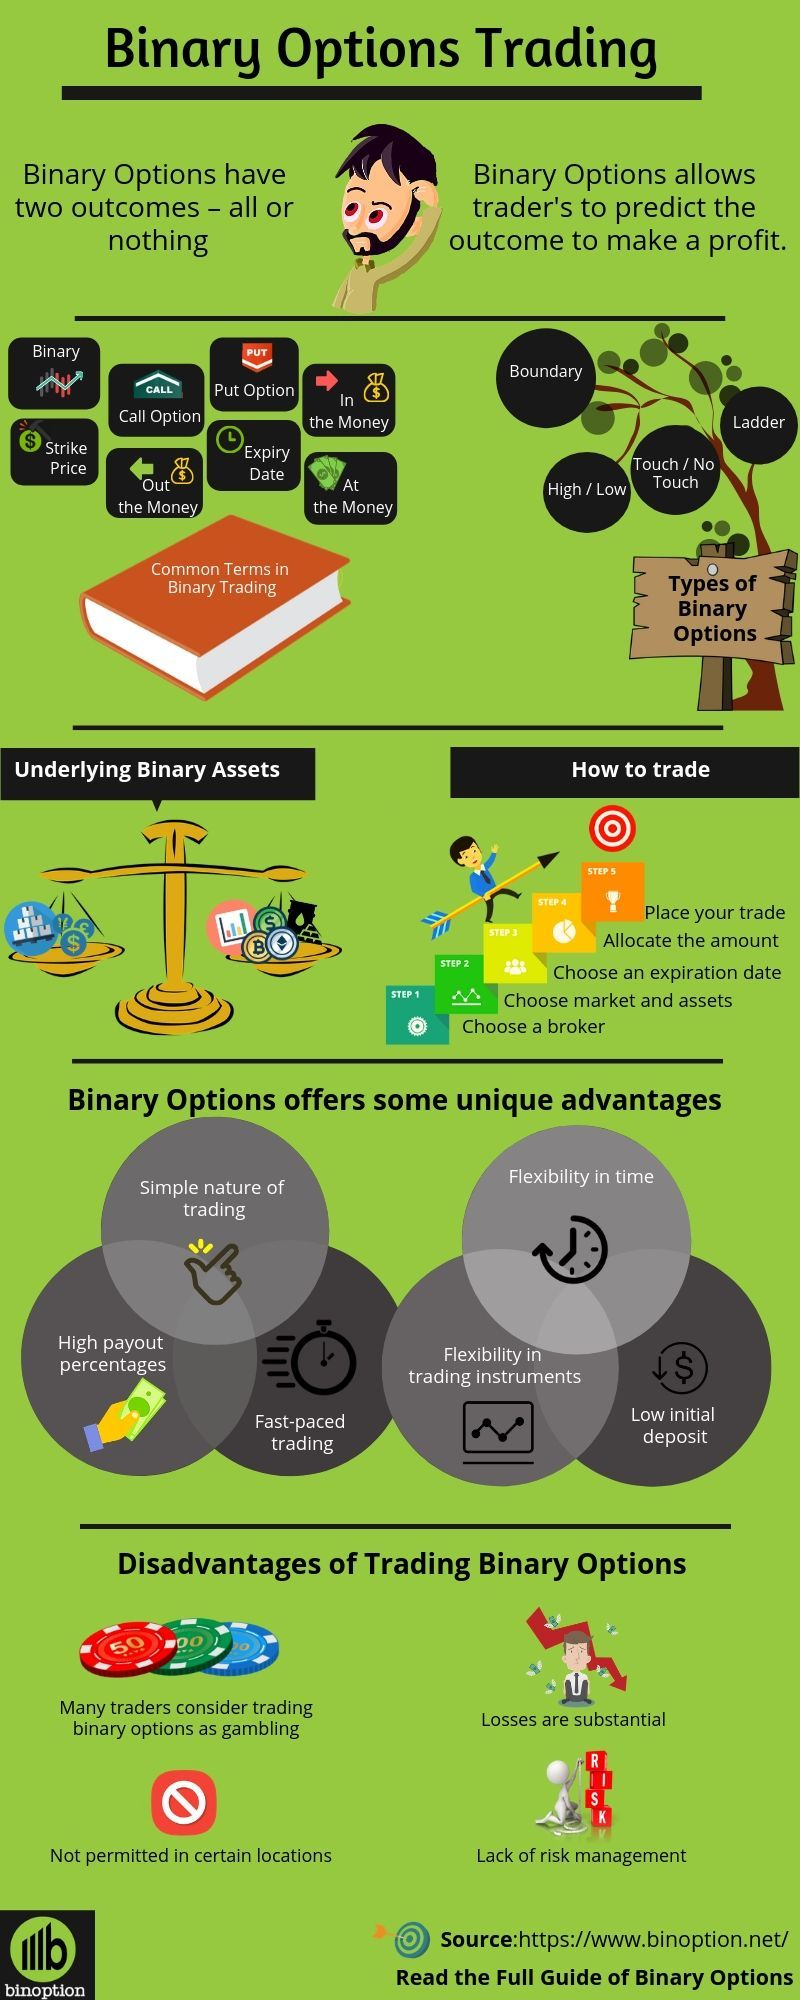 What Are Binary Options Trading? Binary Options